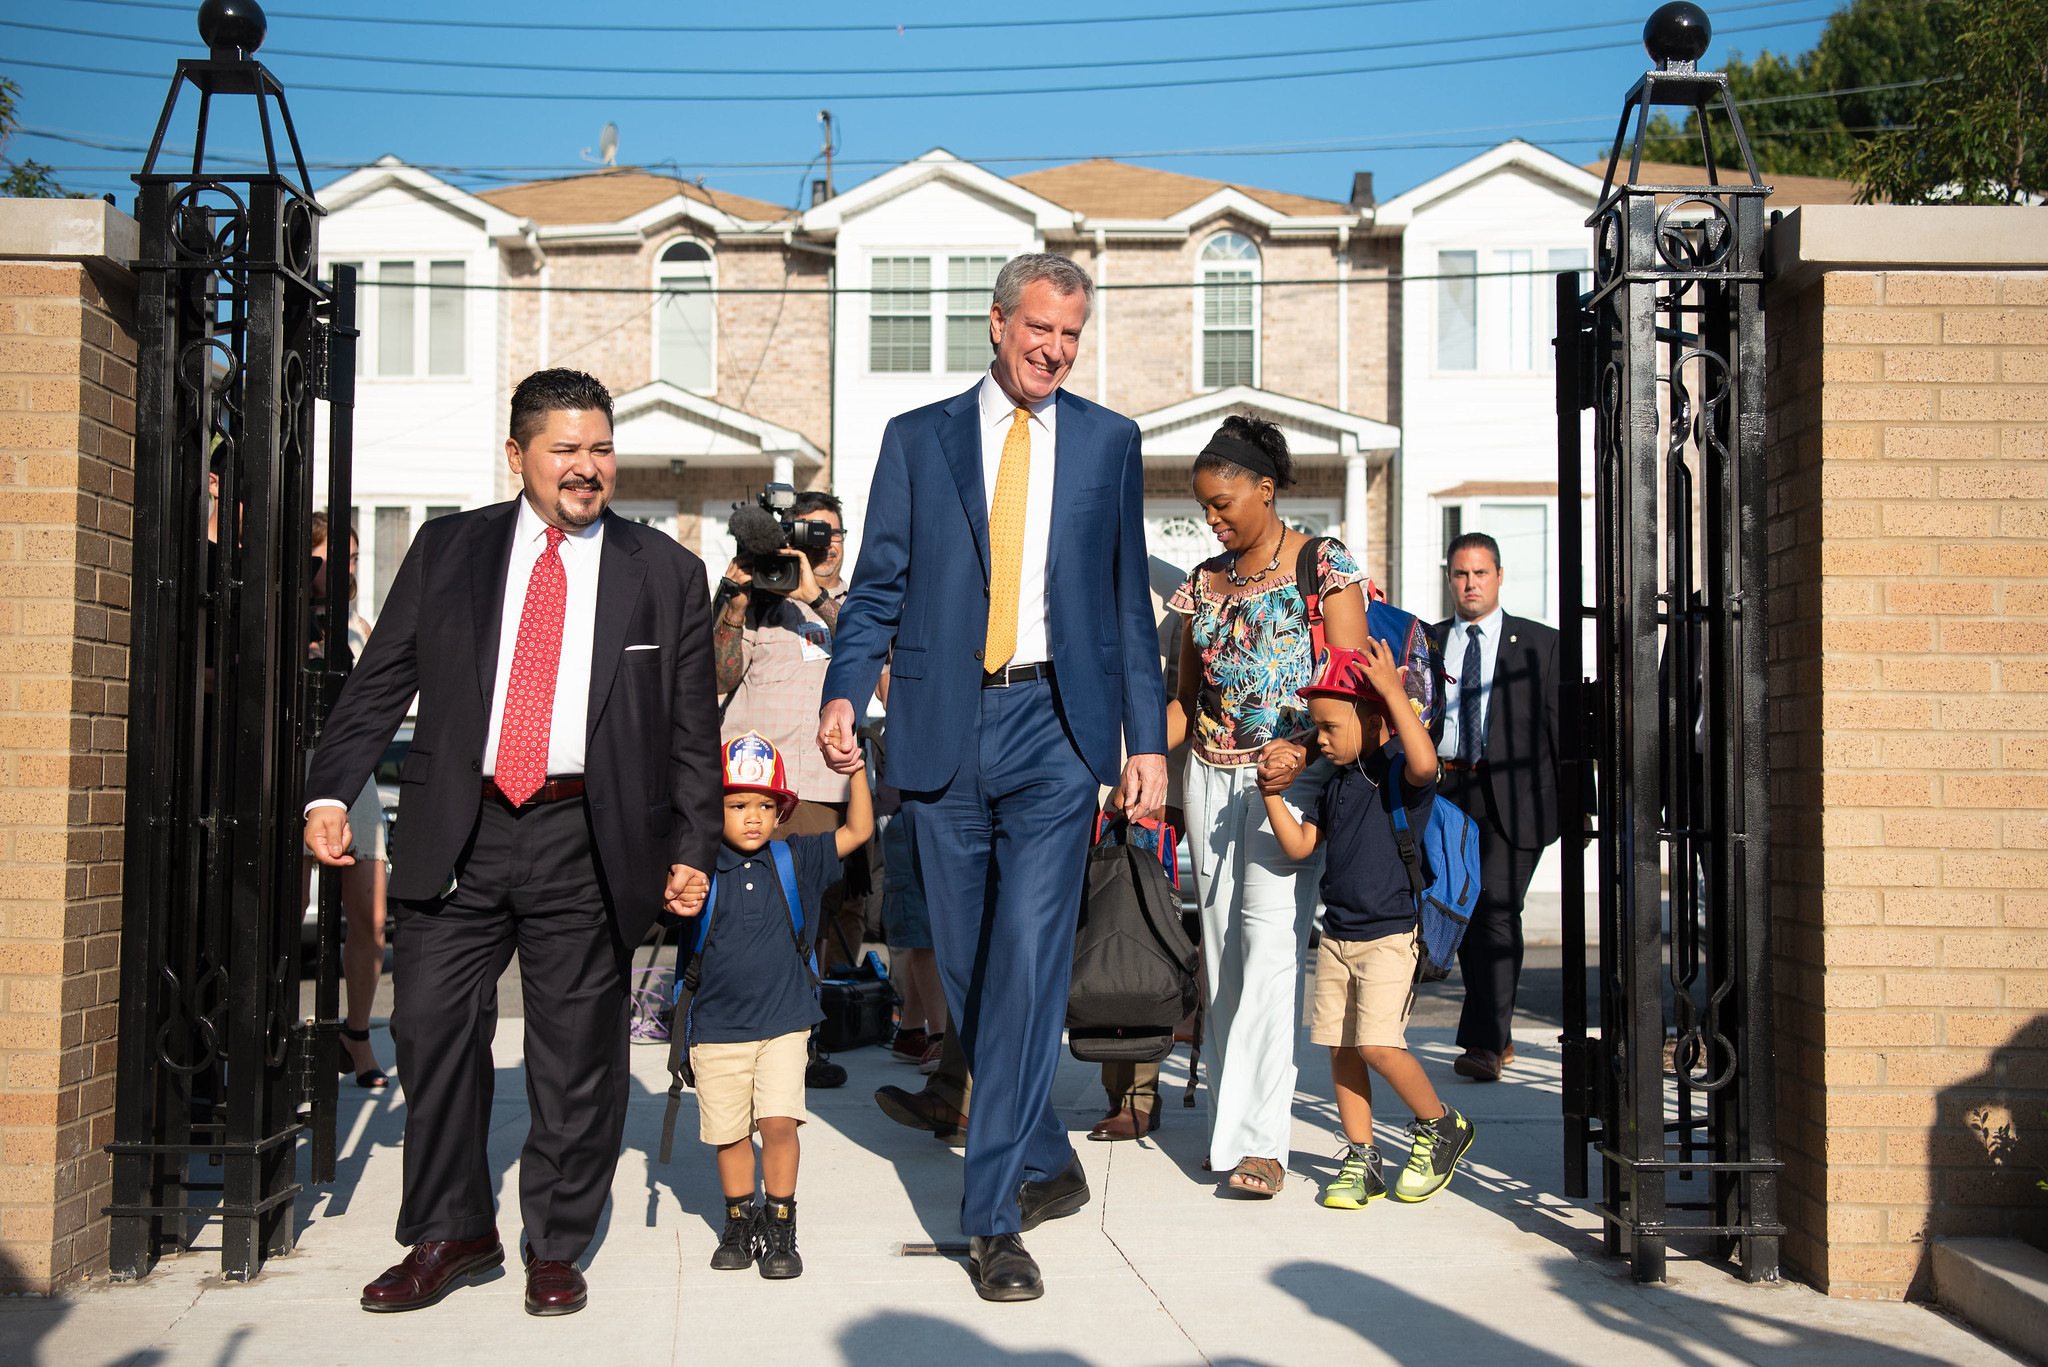 Schools Chancellor Richard Carranza (left) accompanied Mayor Bill de Blasio, Deputy Mayor J. Phillip Thompson and students at PS 377 in Ozone Park for the first day of school in September 2018. Michael Appleton/Mayoral Photography Office.